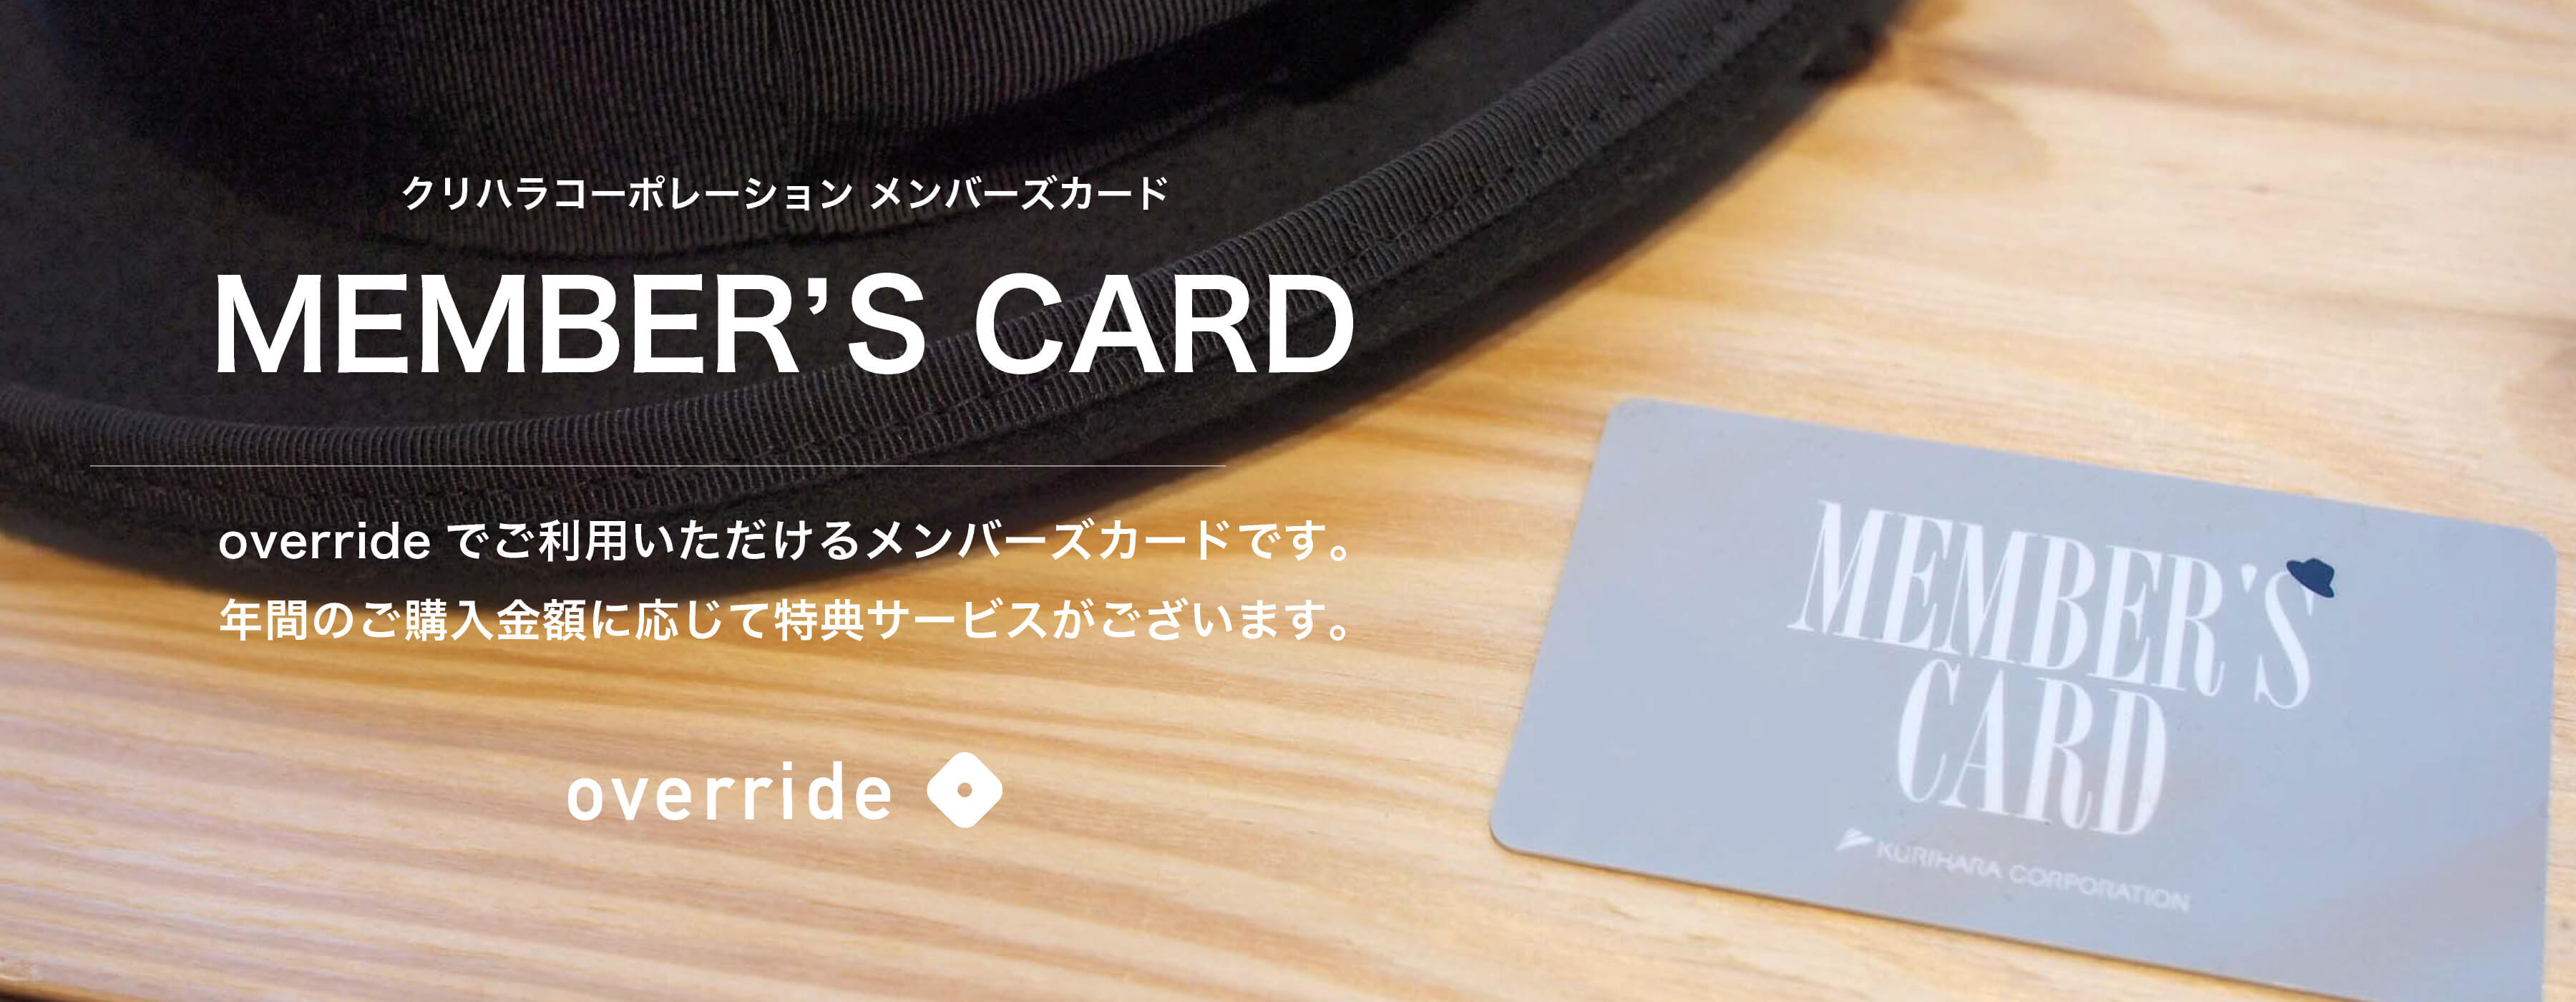 KURIHARA CORPORATION MEMBER'S CARD